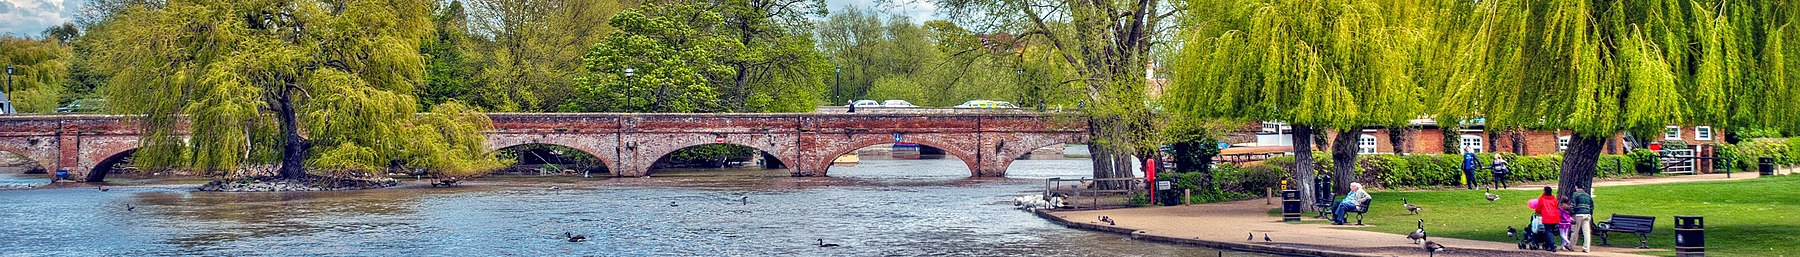 Tramway Bridge over the River Avon at Stratford-upon-Avon